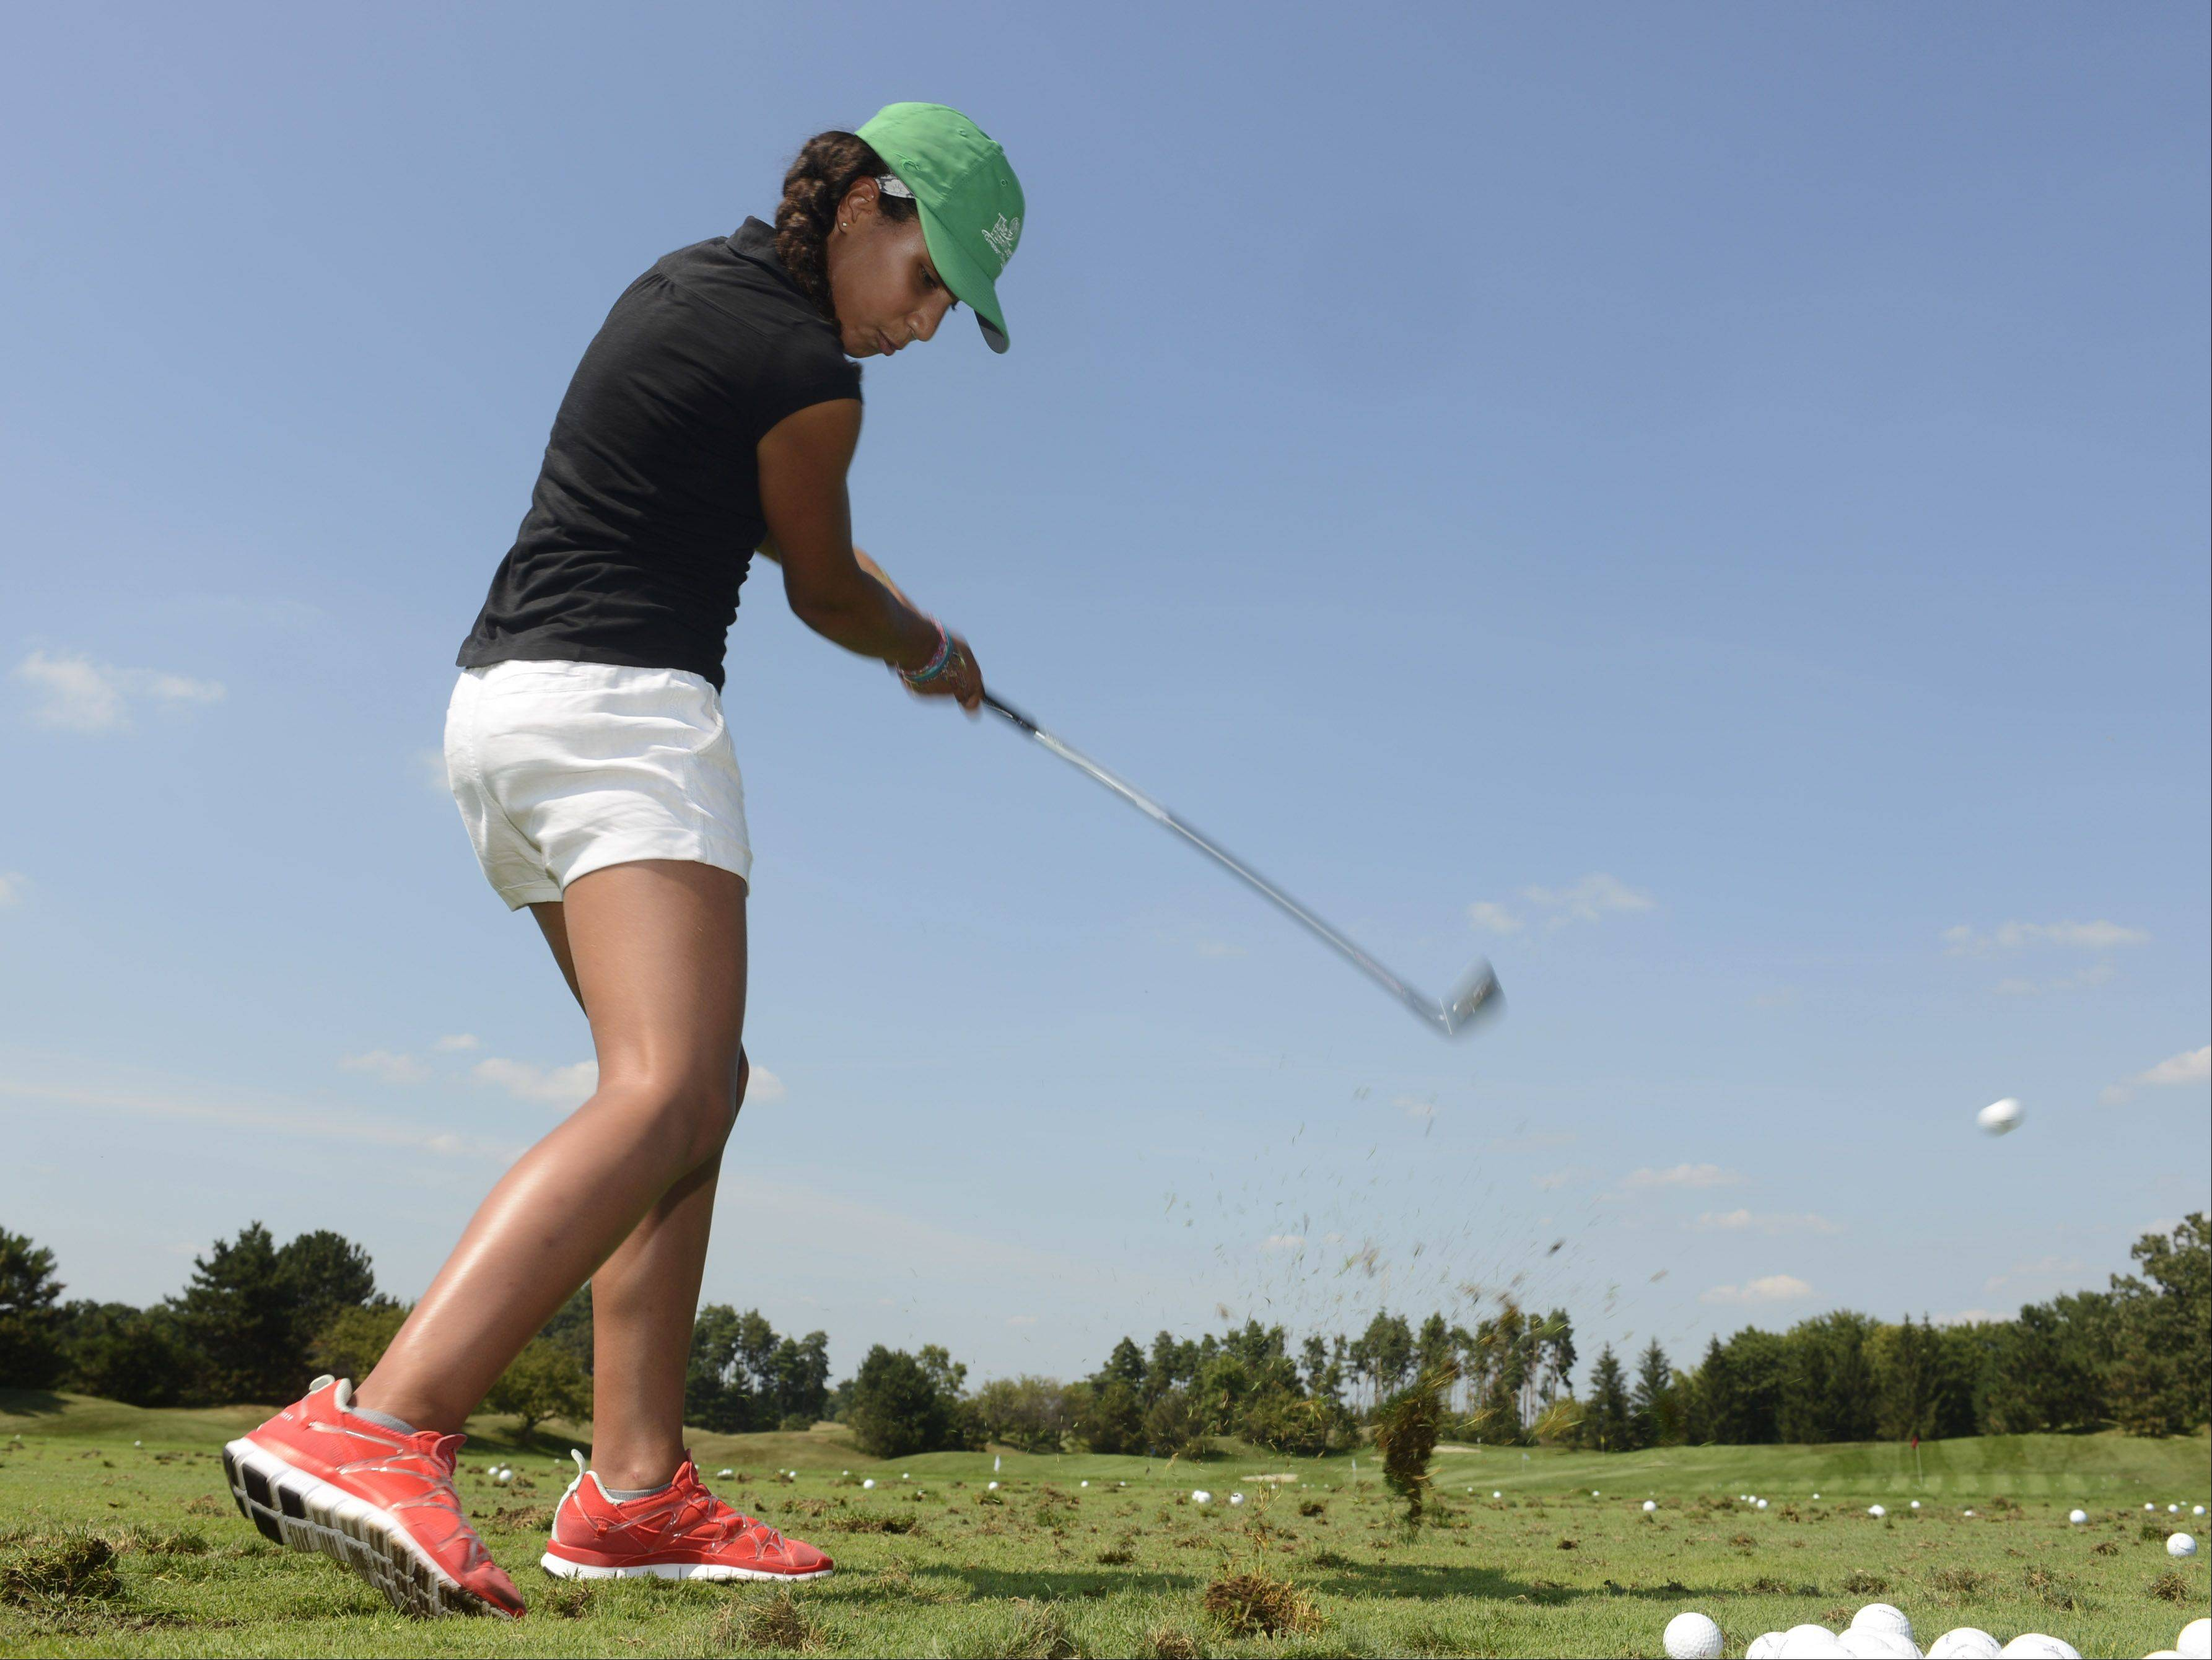 Thandi Steele, 13, of Evanston, hits a ball during the First Tee golf event at Ivanhoe Club near Mundelein. First Tee uses the game of golf to provide education programs that build character. Thirteen kids were rewarded for their good choices with a special day at Ivanhoe.